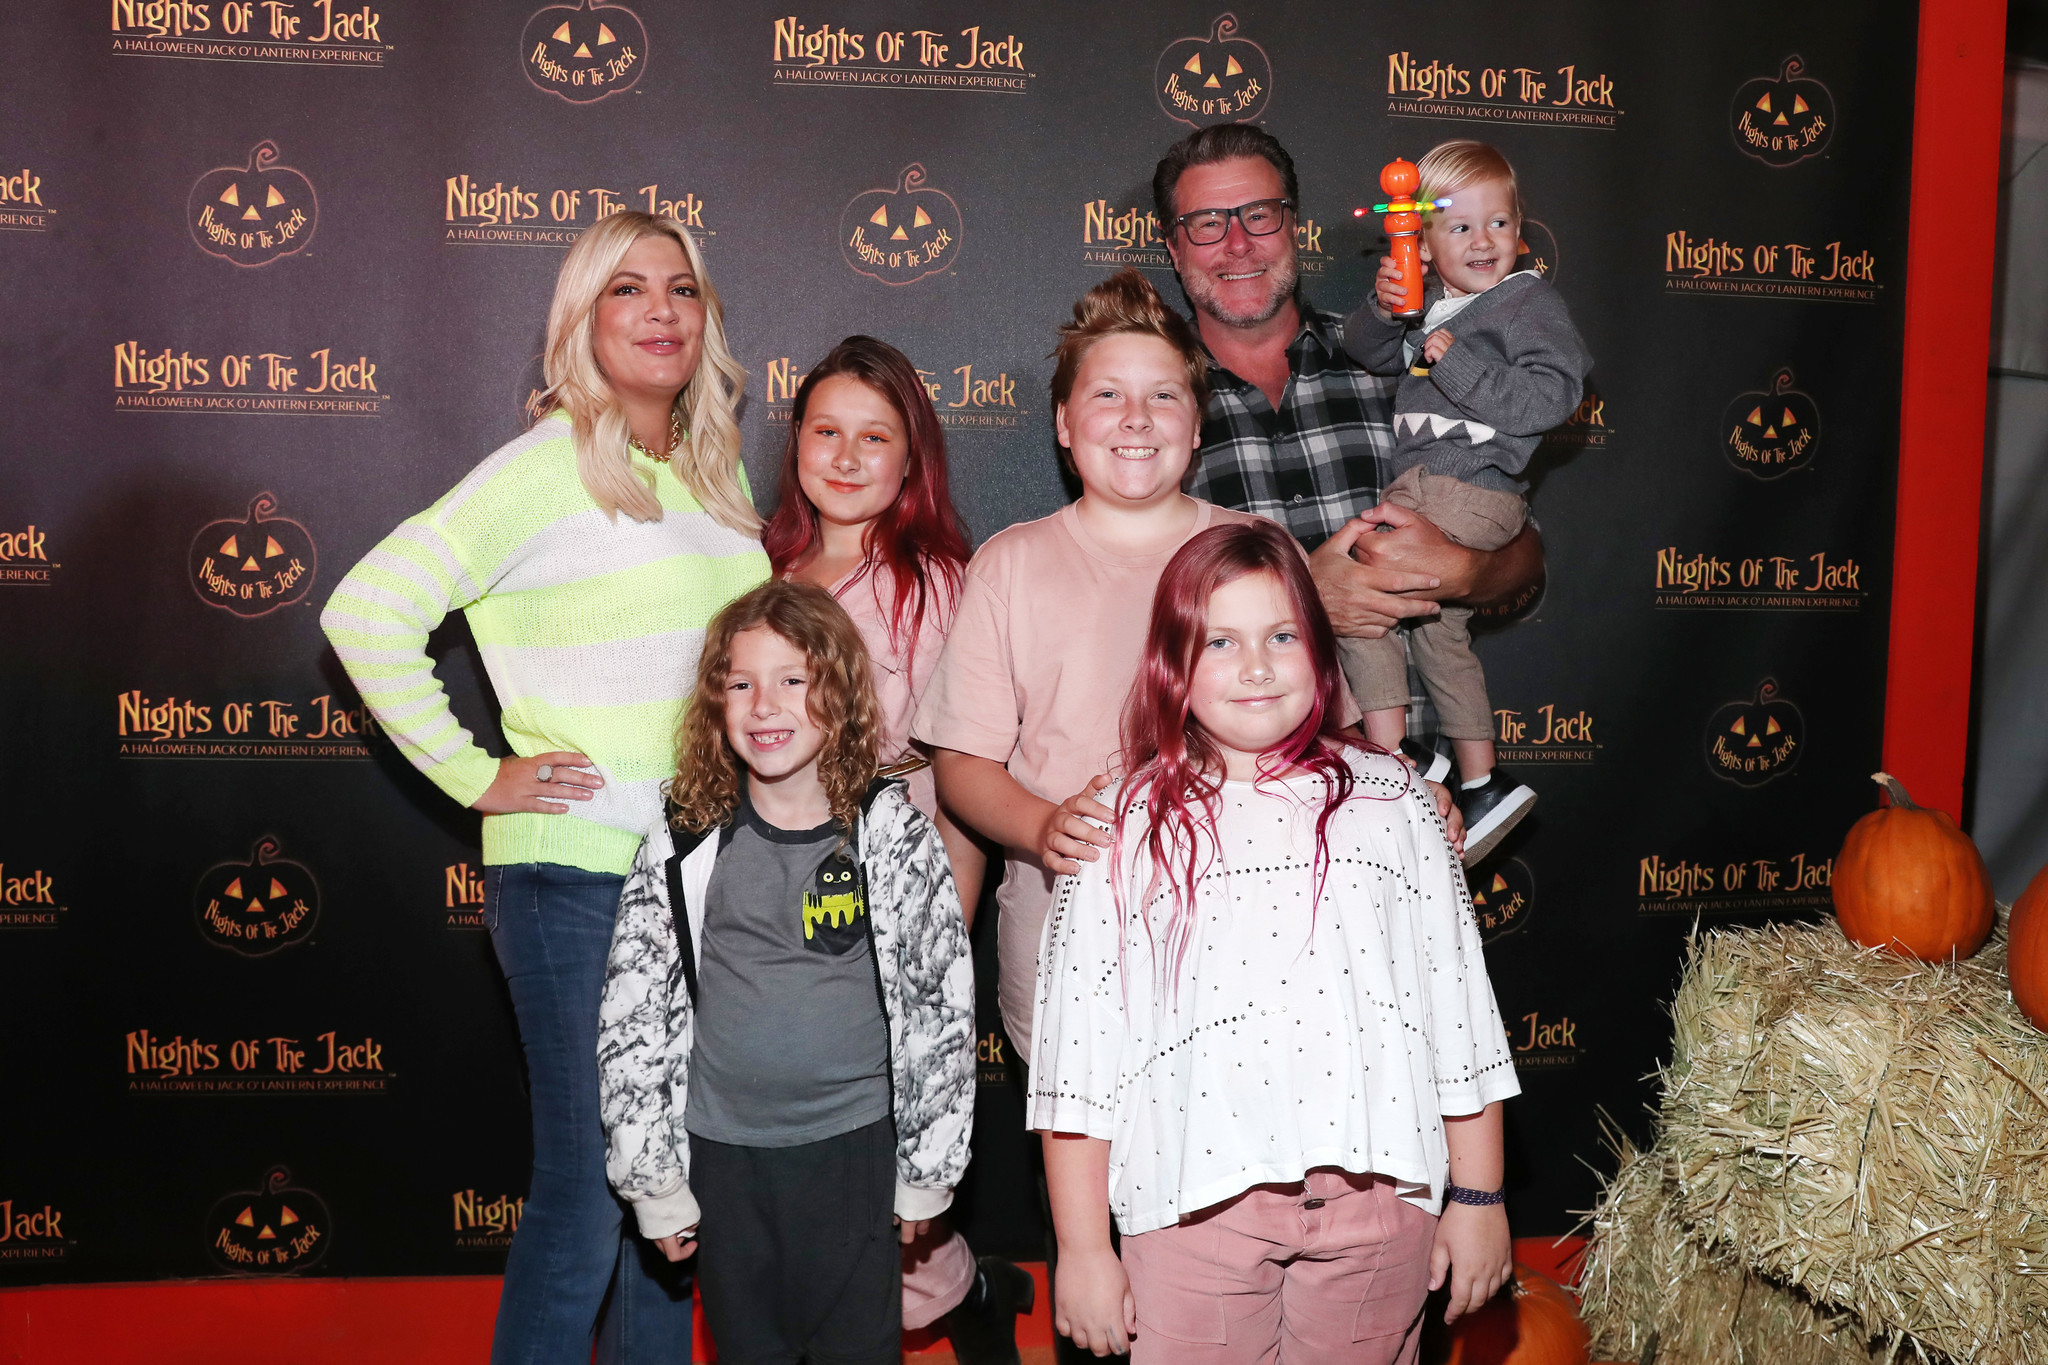 Tori Spelling says her kids were bullied to point where son, 12, got severe headaches and stomachaches